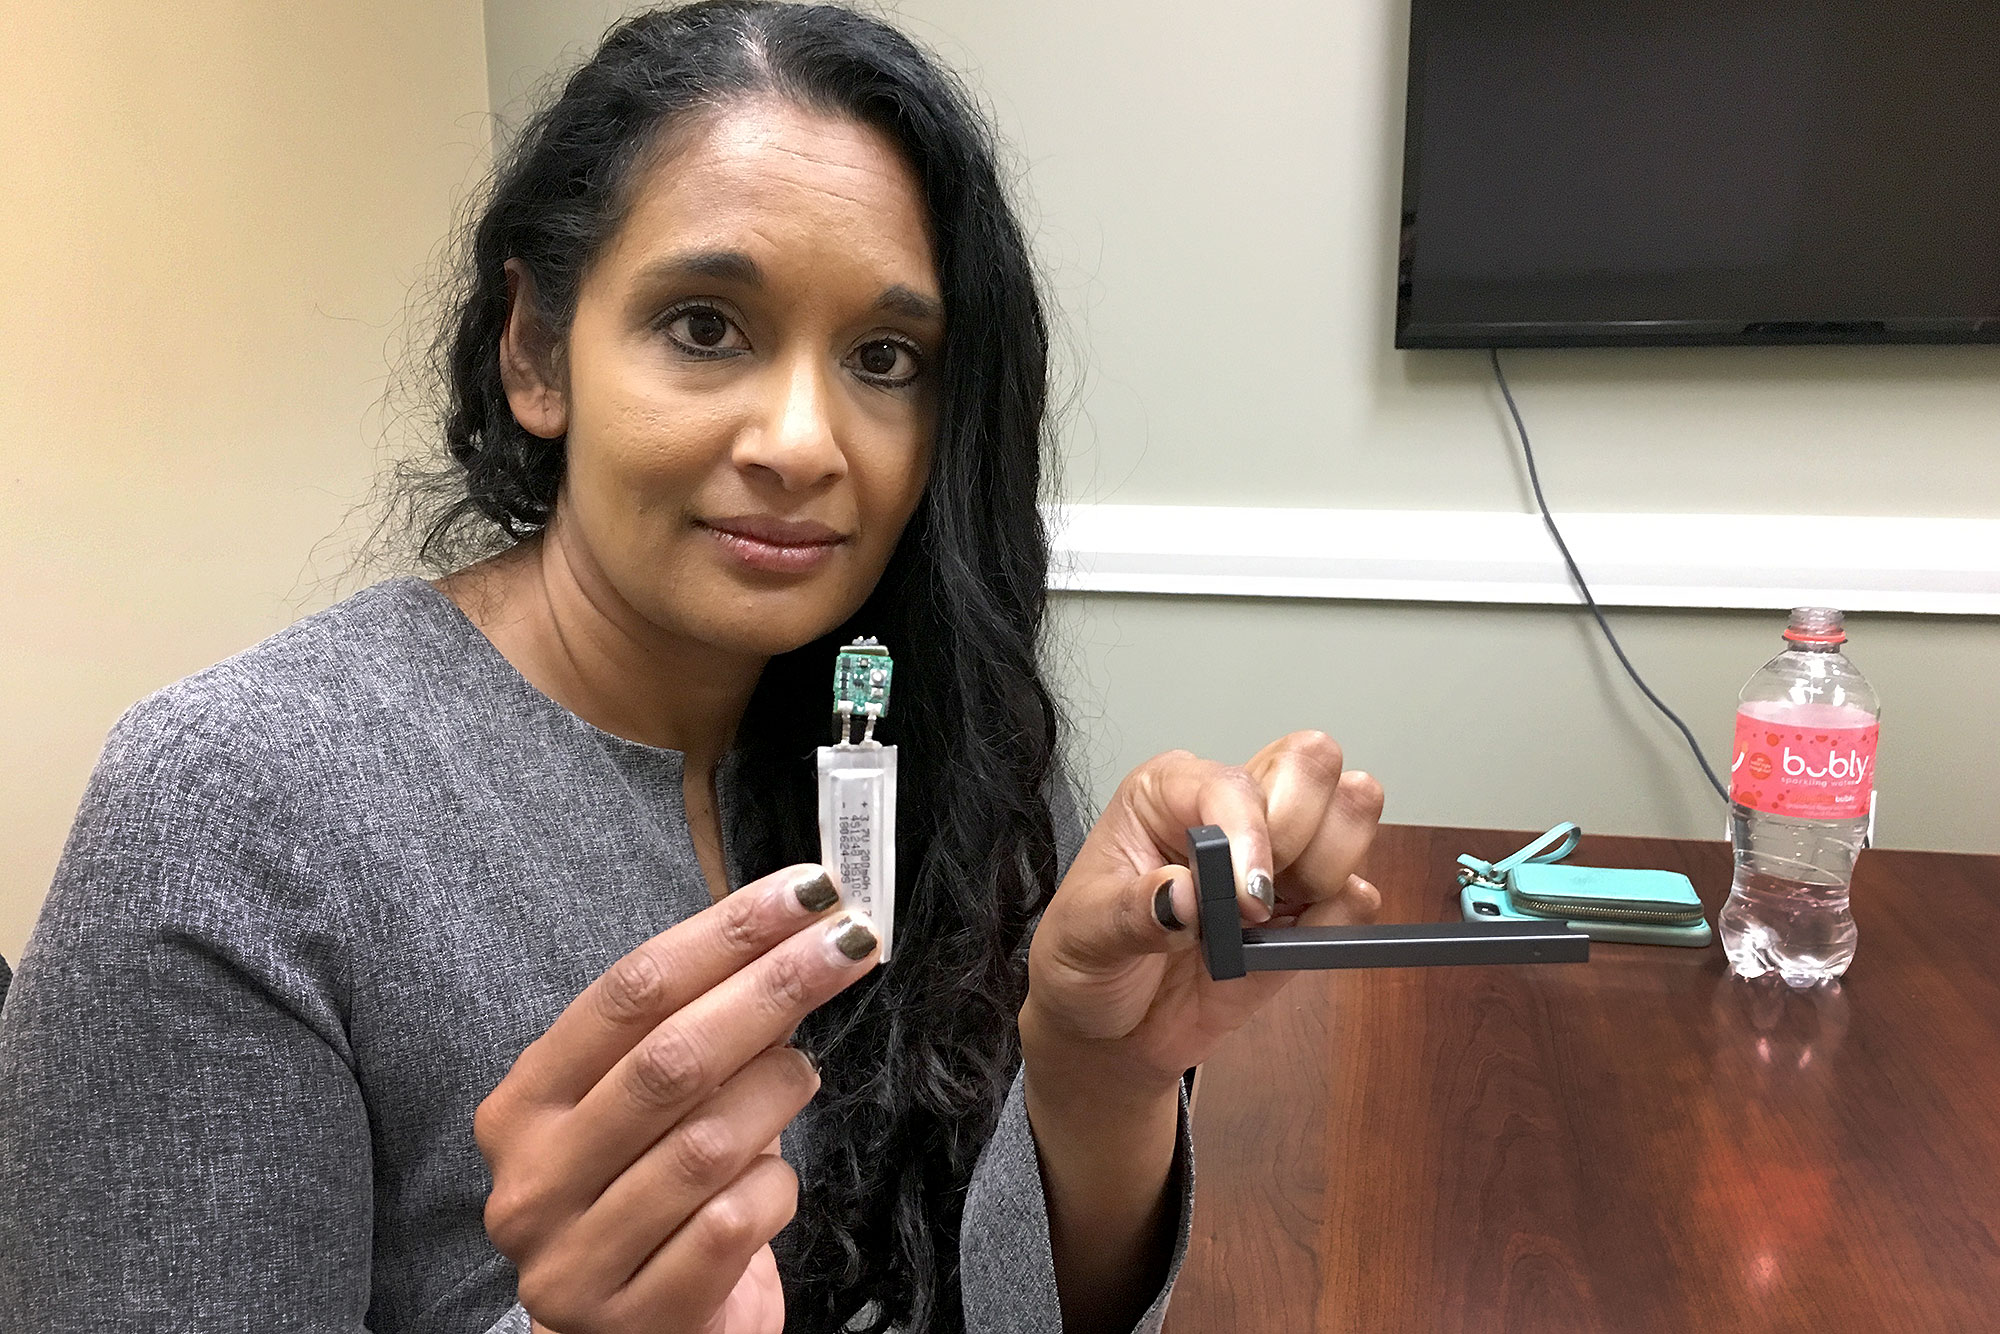 "<p class=""normal"">Tista Ghosh, Colorado's chief medical officer, displays a Juul's workings. </p>"